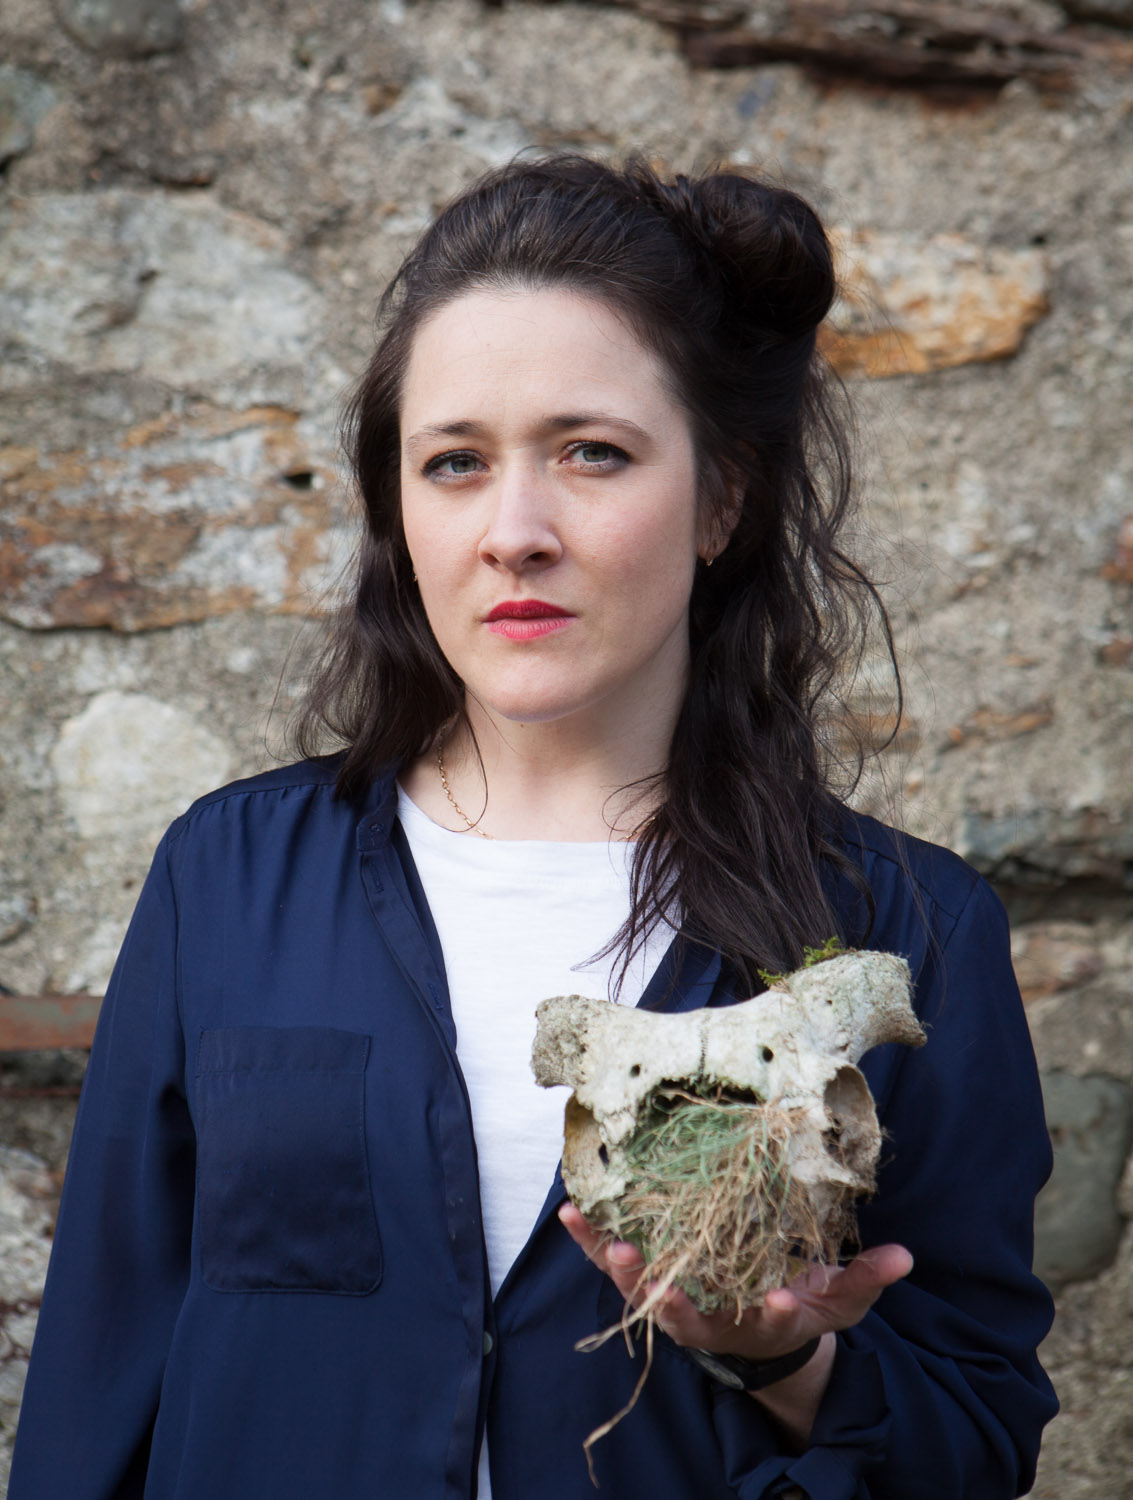 Sam Frankie Fox - Sam is leading our Dinorwig Canu Chwarel Singing Slate workshop. She specialises in exploring the full range of the human voice in a playful, approachable way.